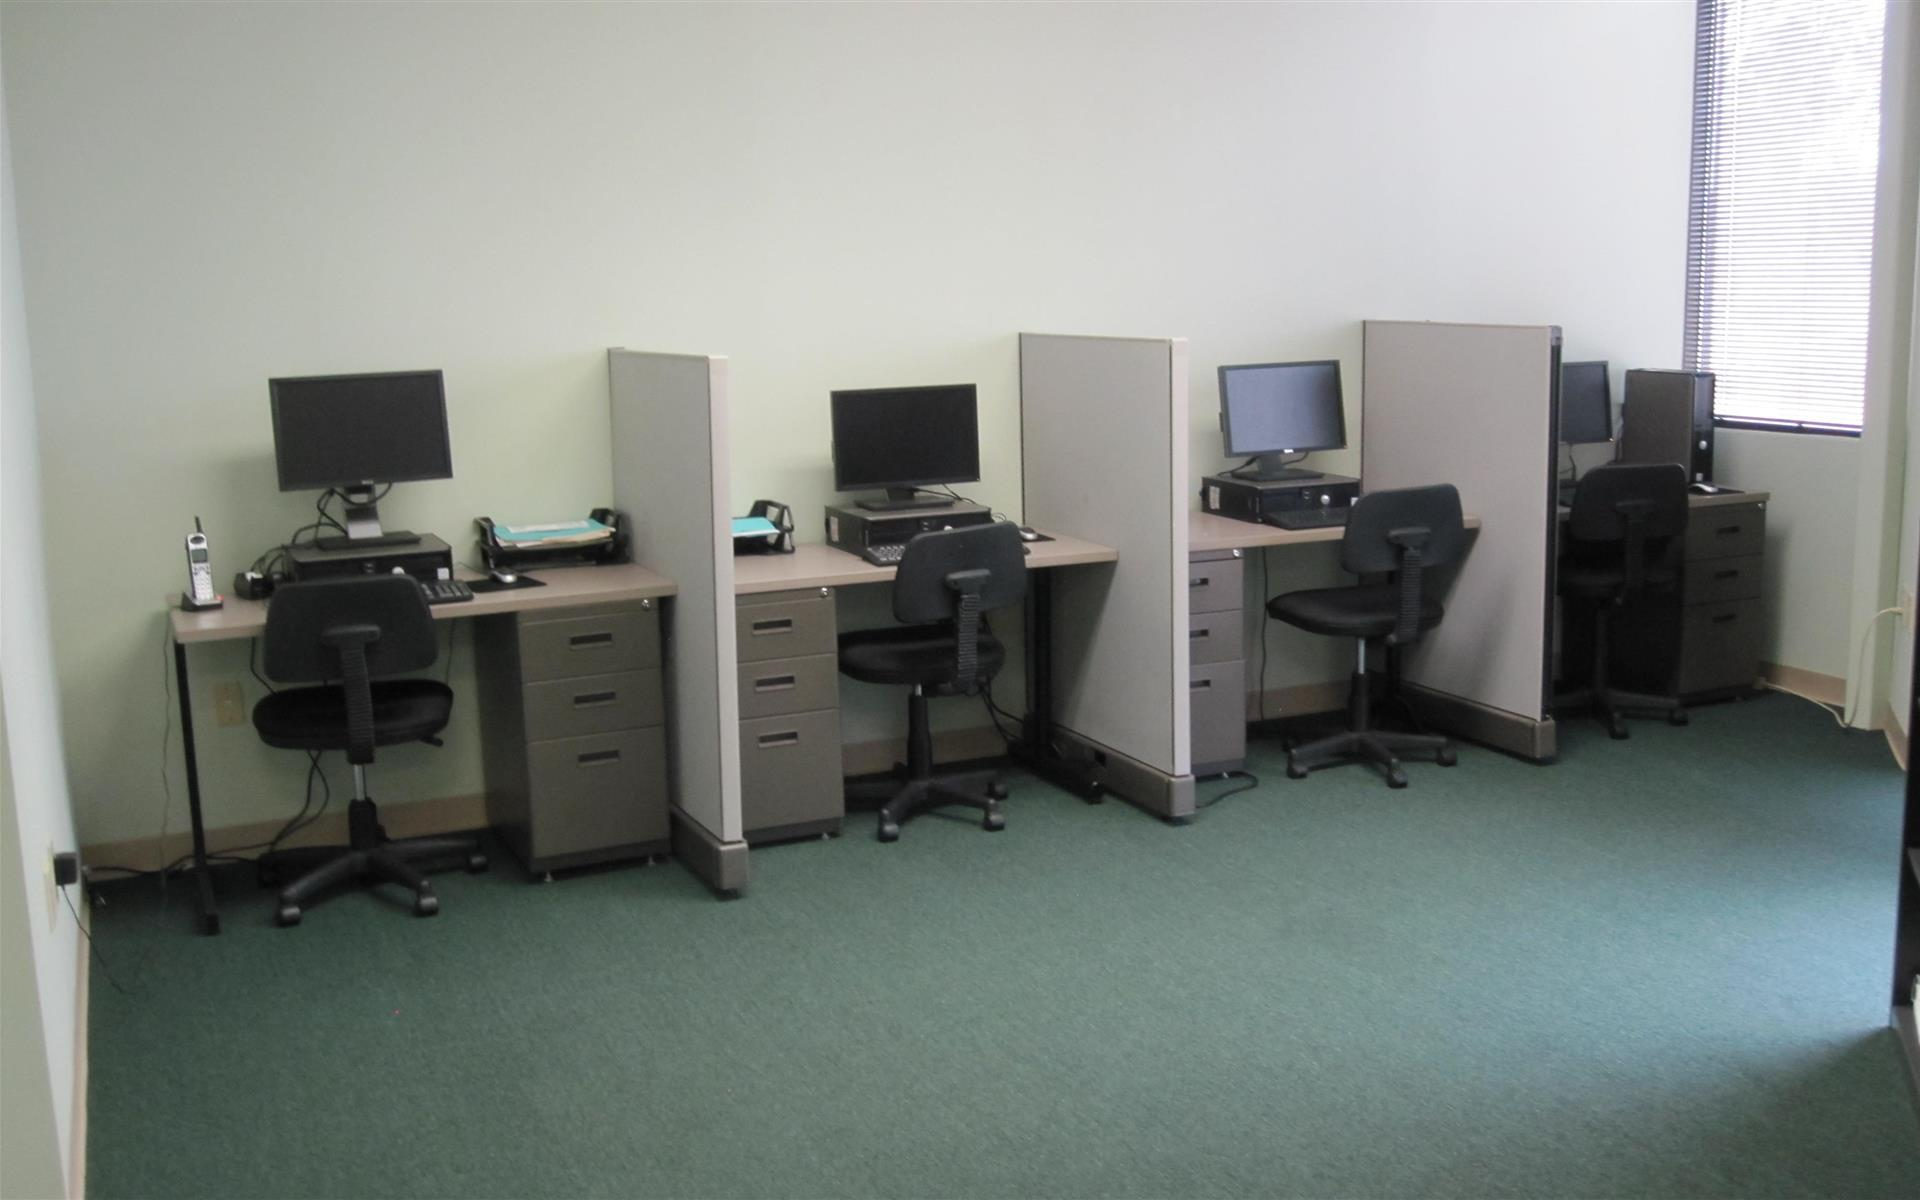 AMS Business and Training Center - Dedicated desk